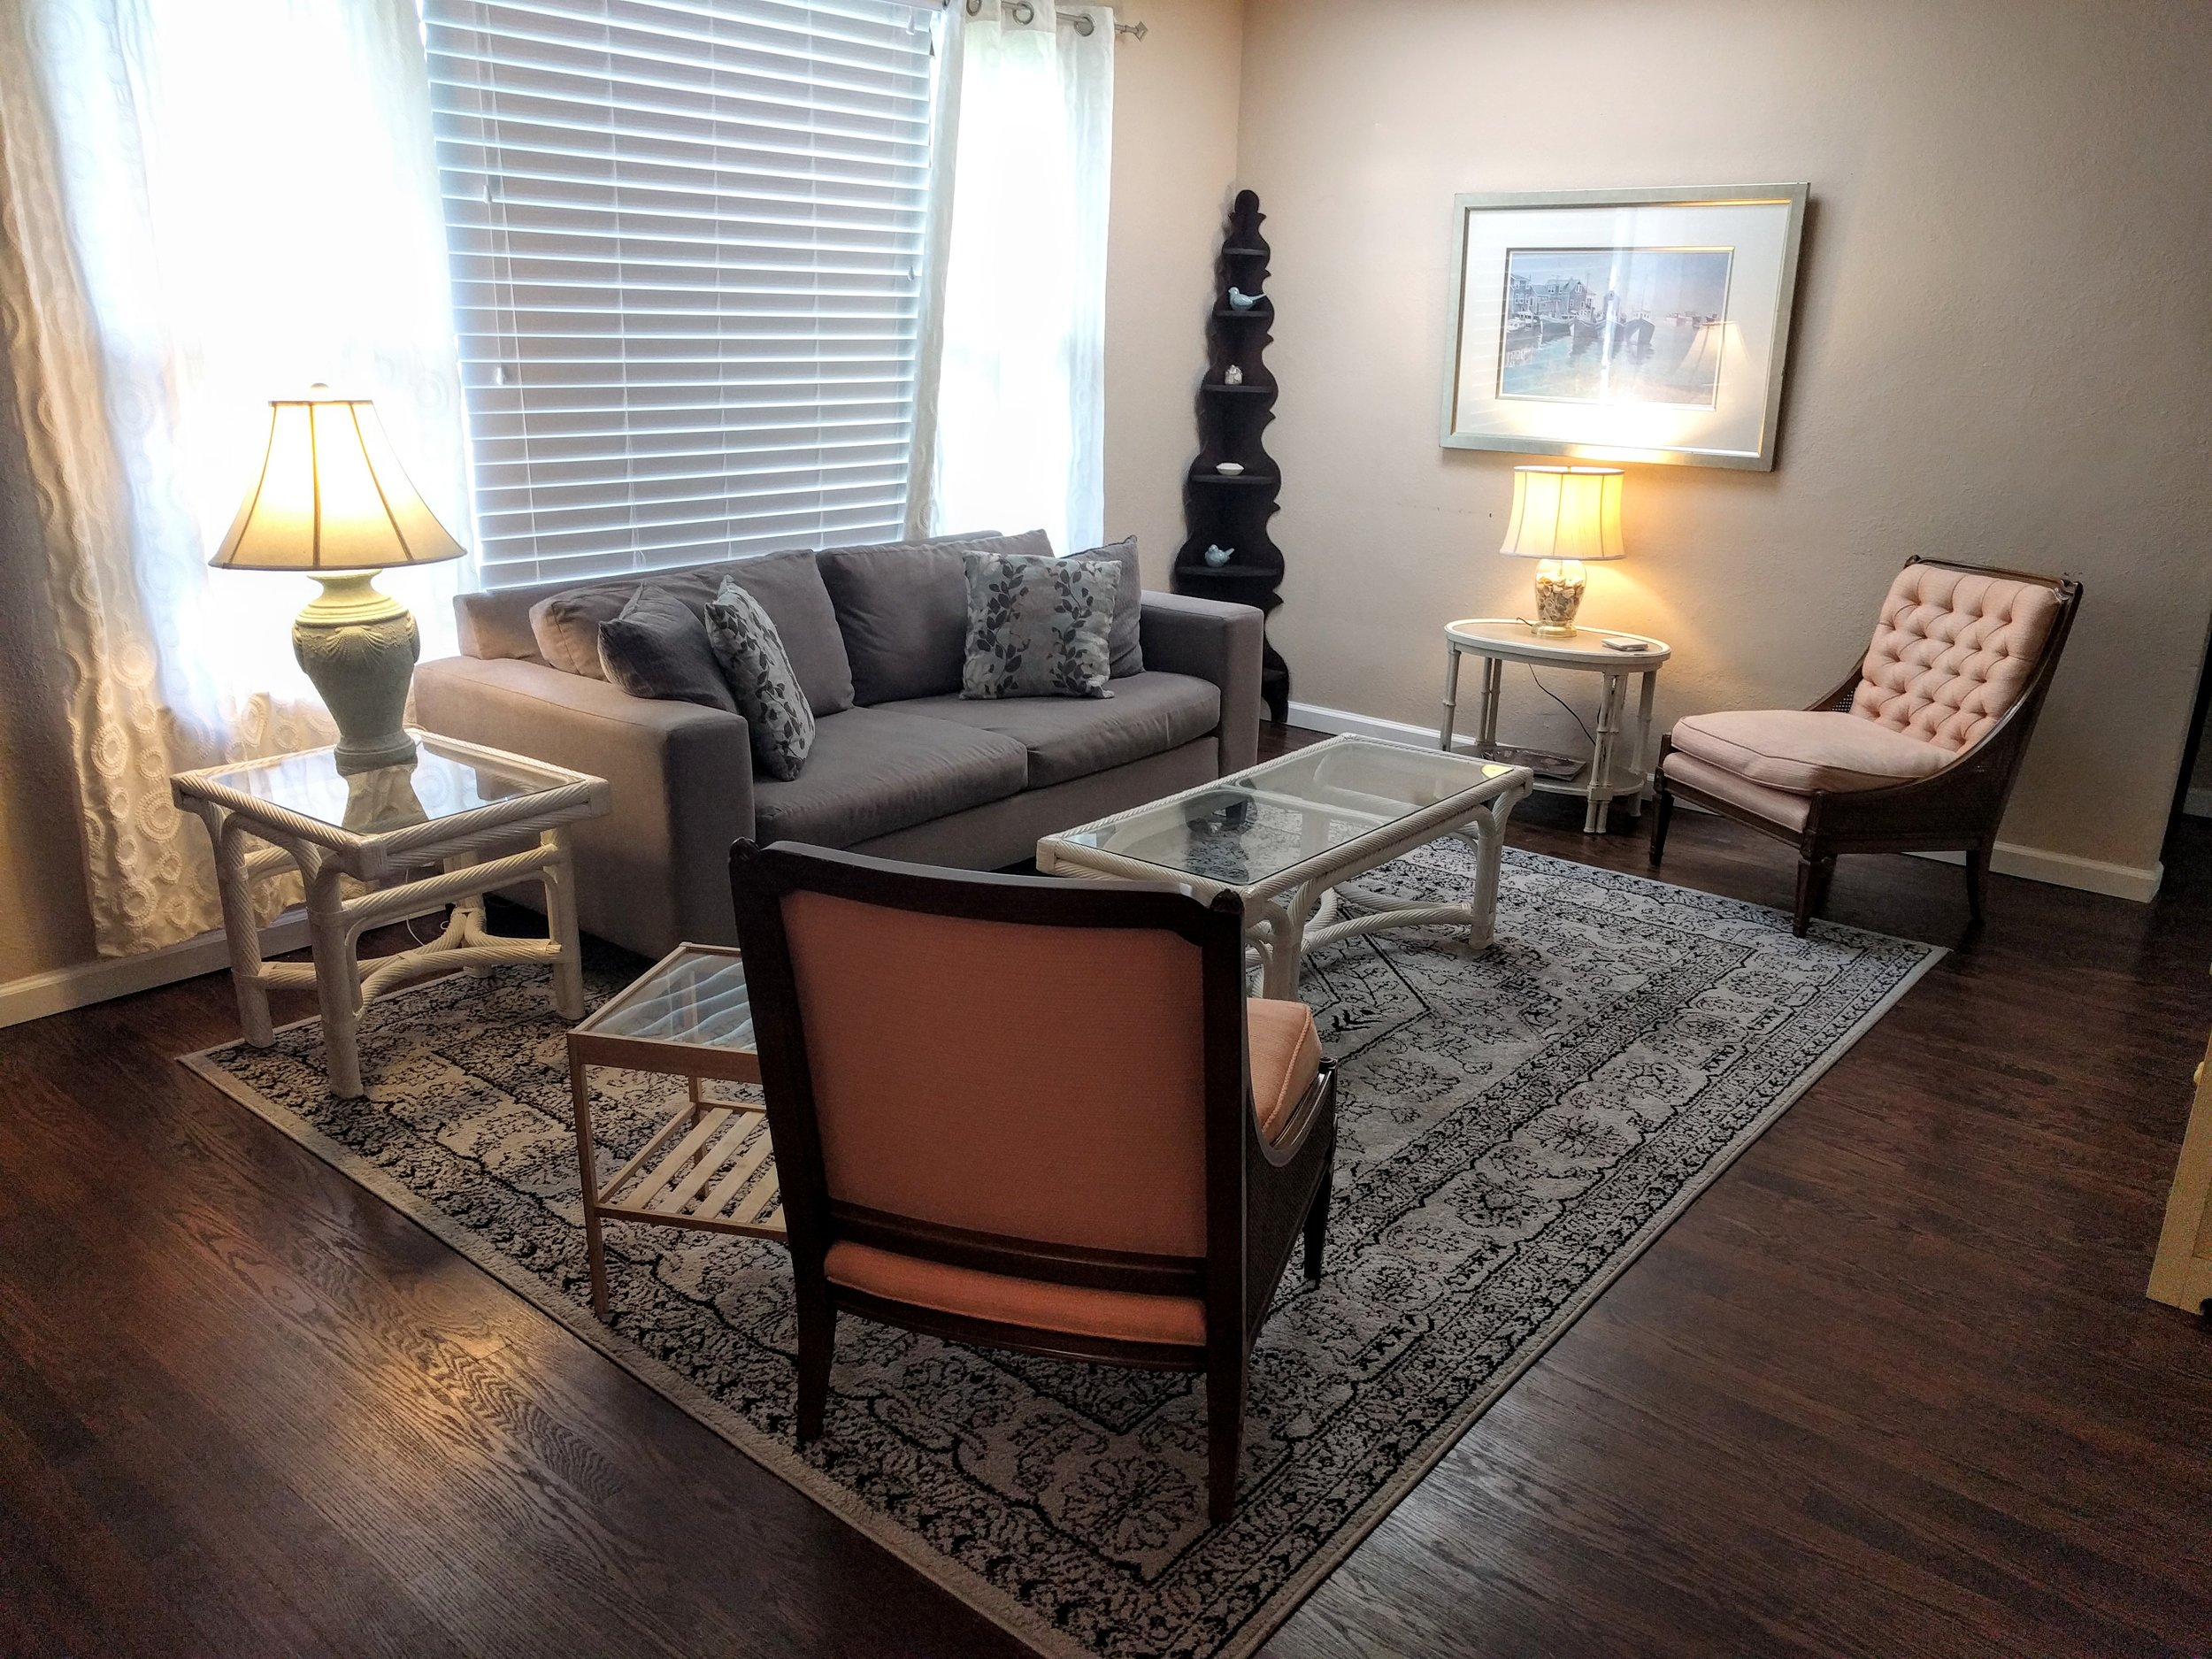 New couch, tables, rug.